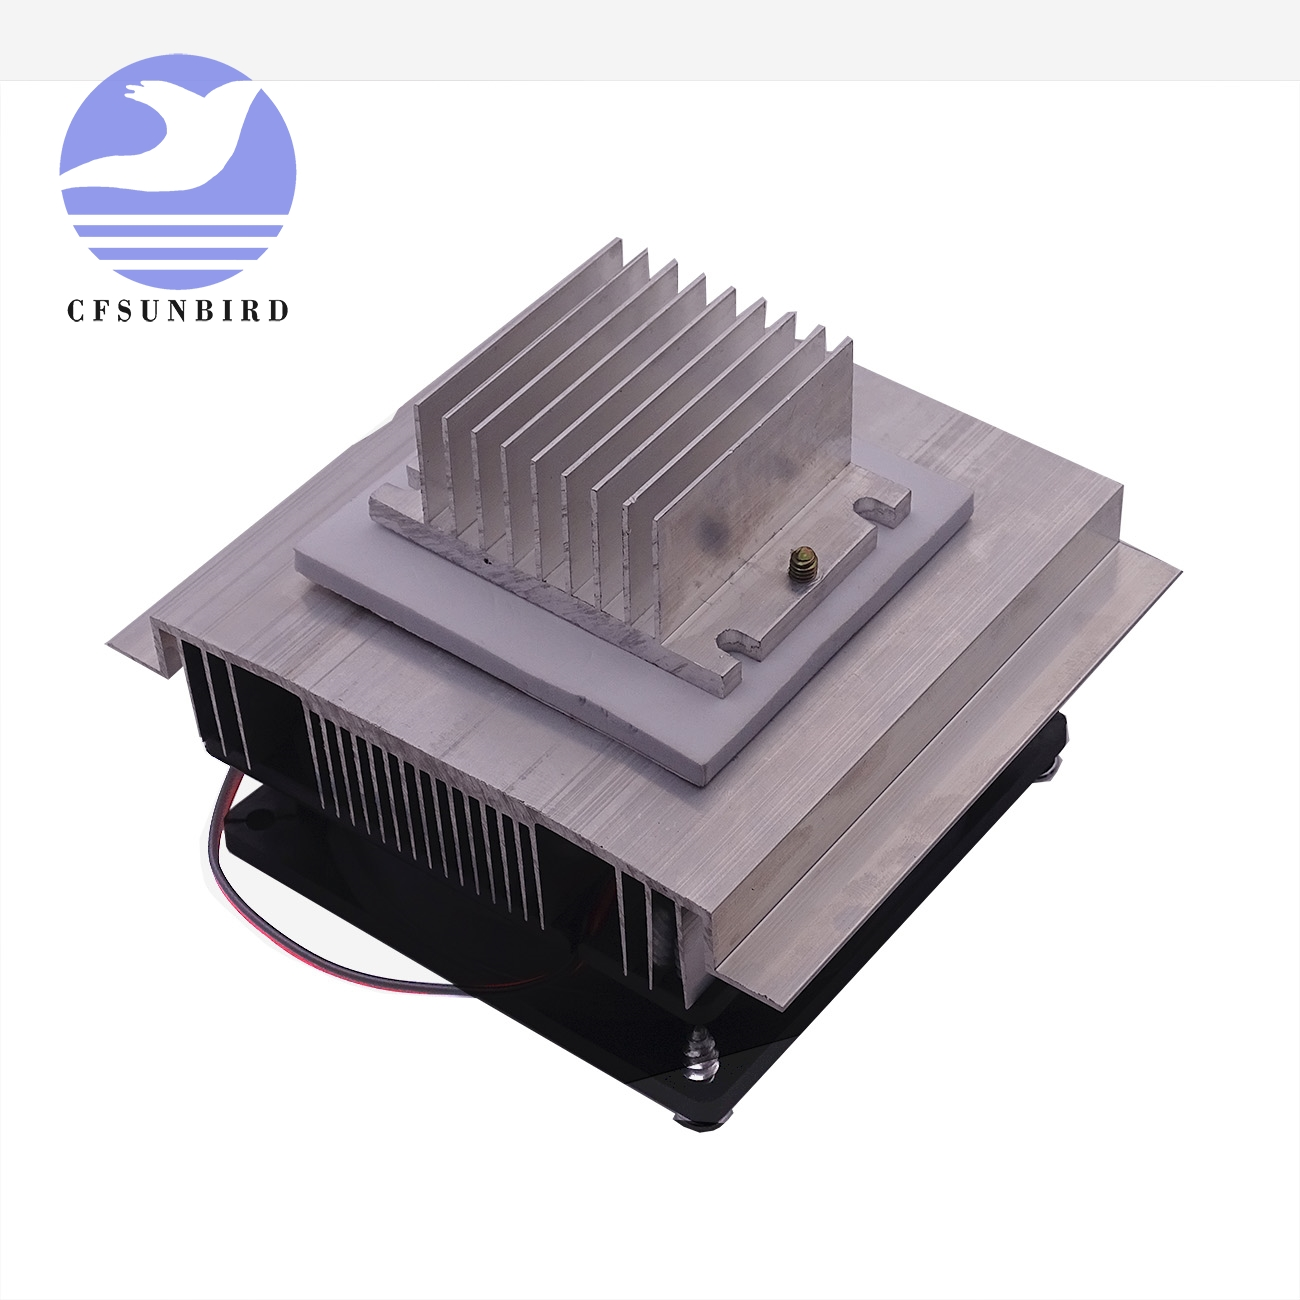 NEW-DIY Cooling Set 12v Electronic Refrigerator Semiconductor Thermoelectric Cooler Dehumidifier Elements Cooling Module 12706